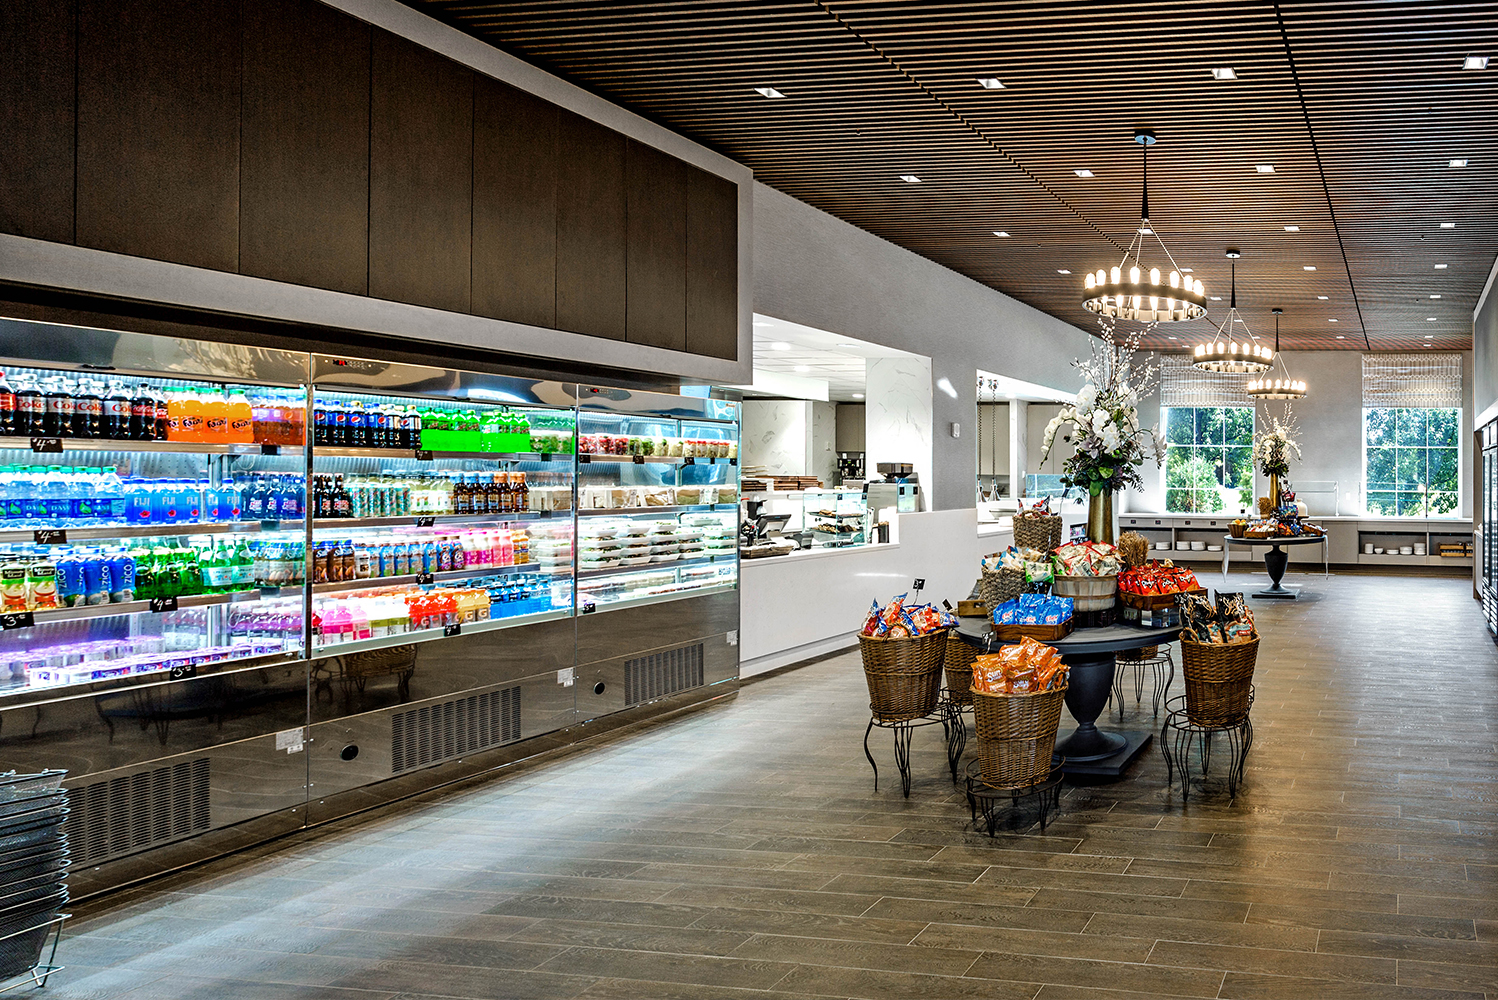 The Hilton Columbus at Easton's new lobby bar, Easton Social, is joined by a new restaurant called Herb N' Kitchen.